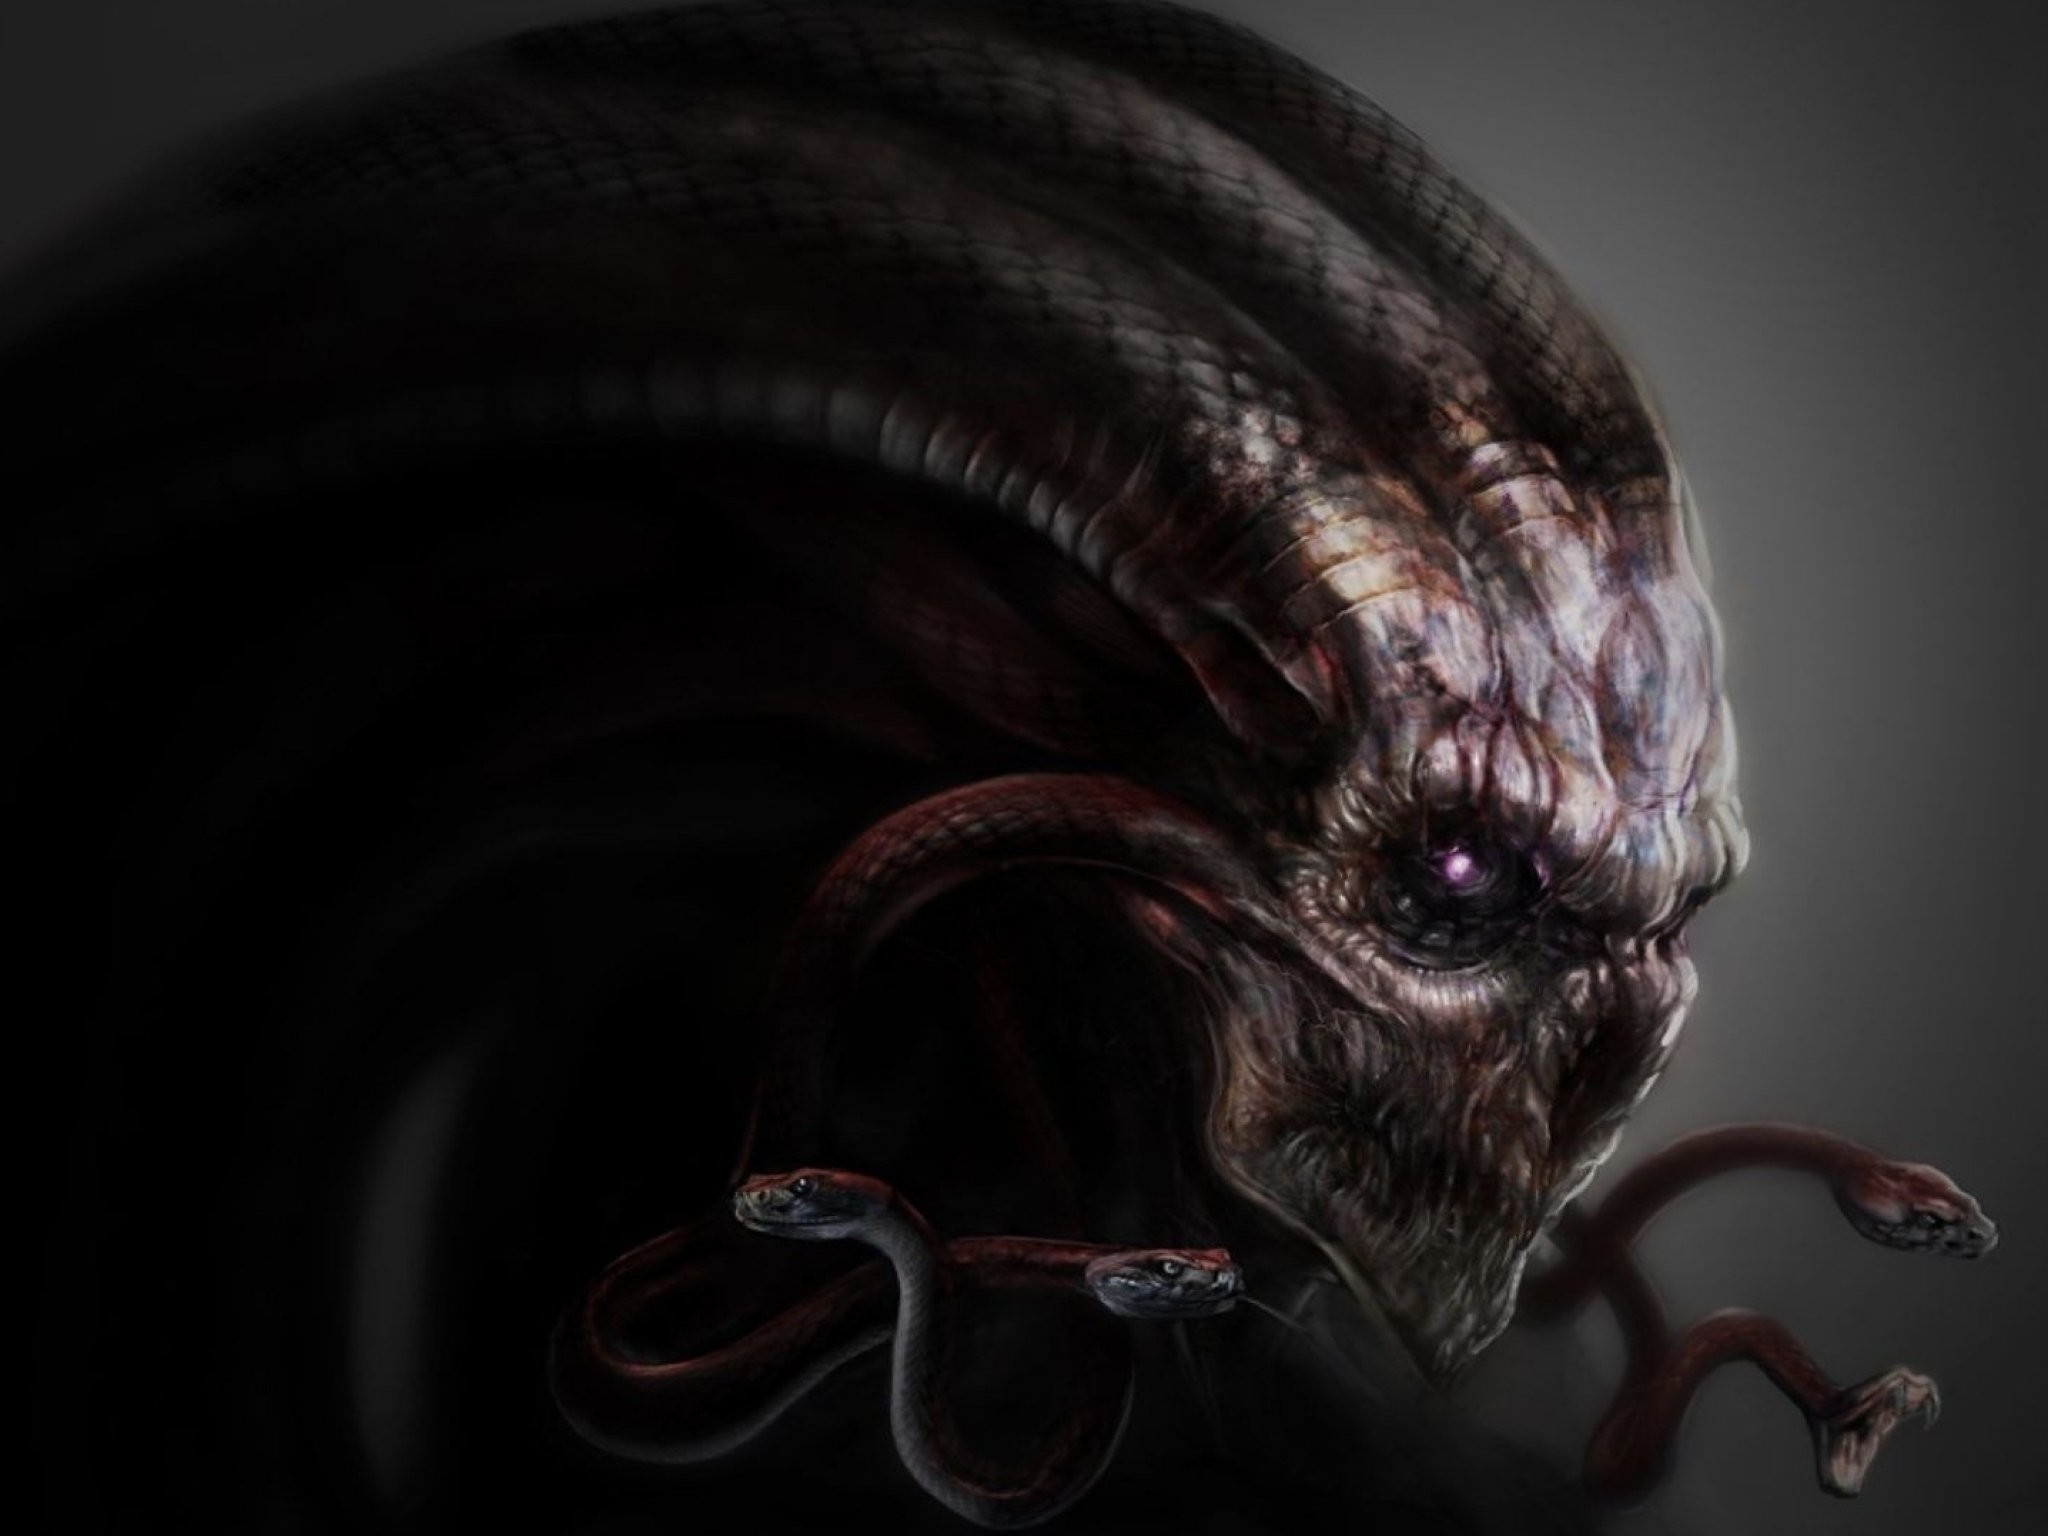 Scary Hd Wallpaper (61+ Images